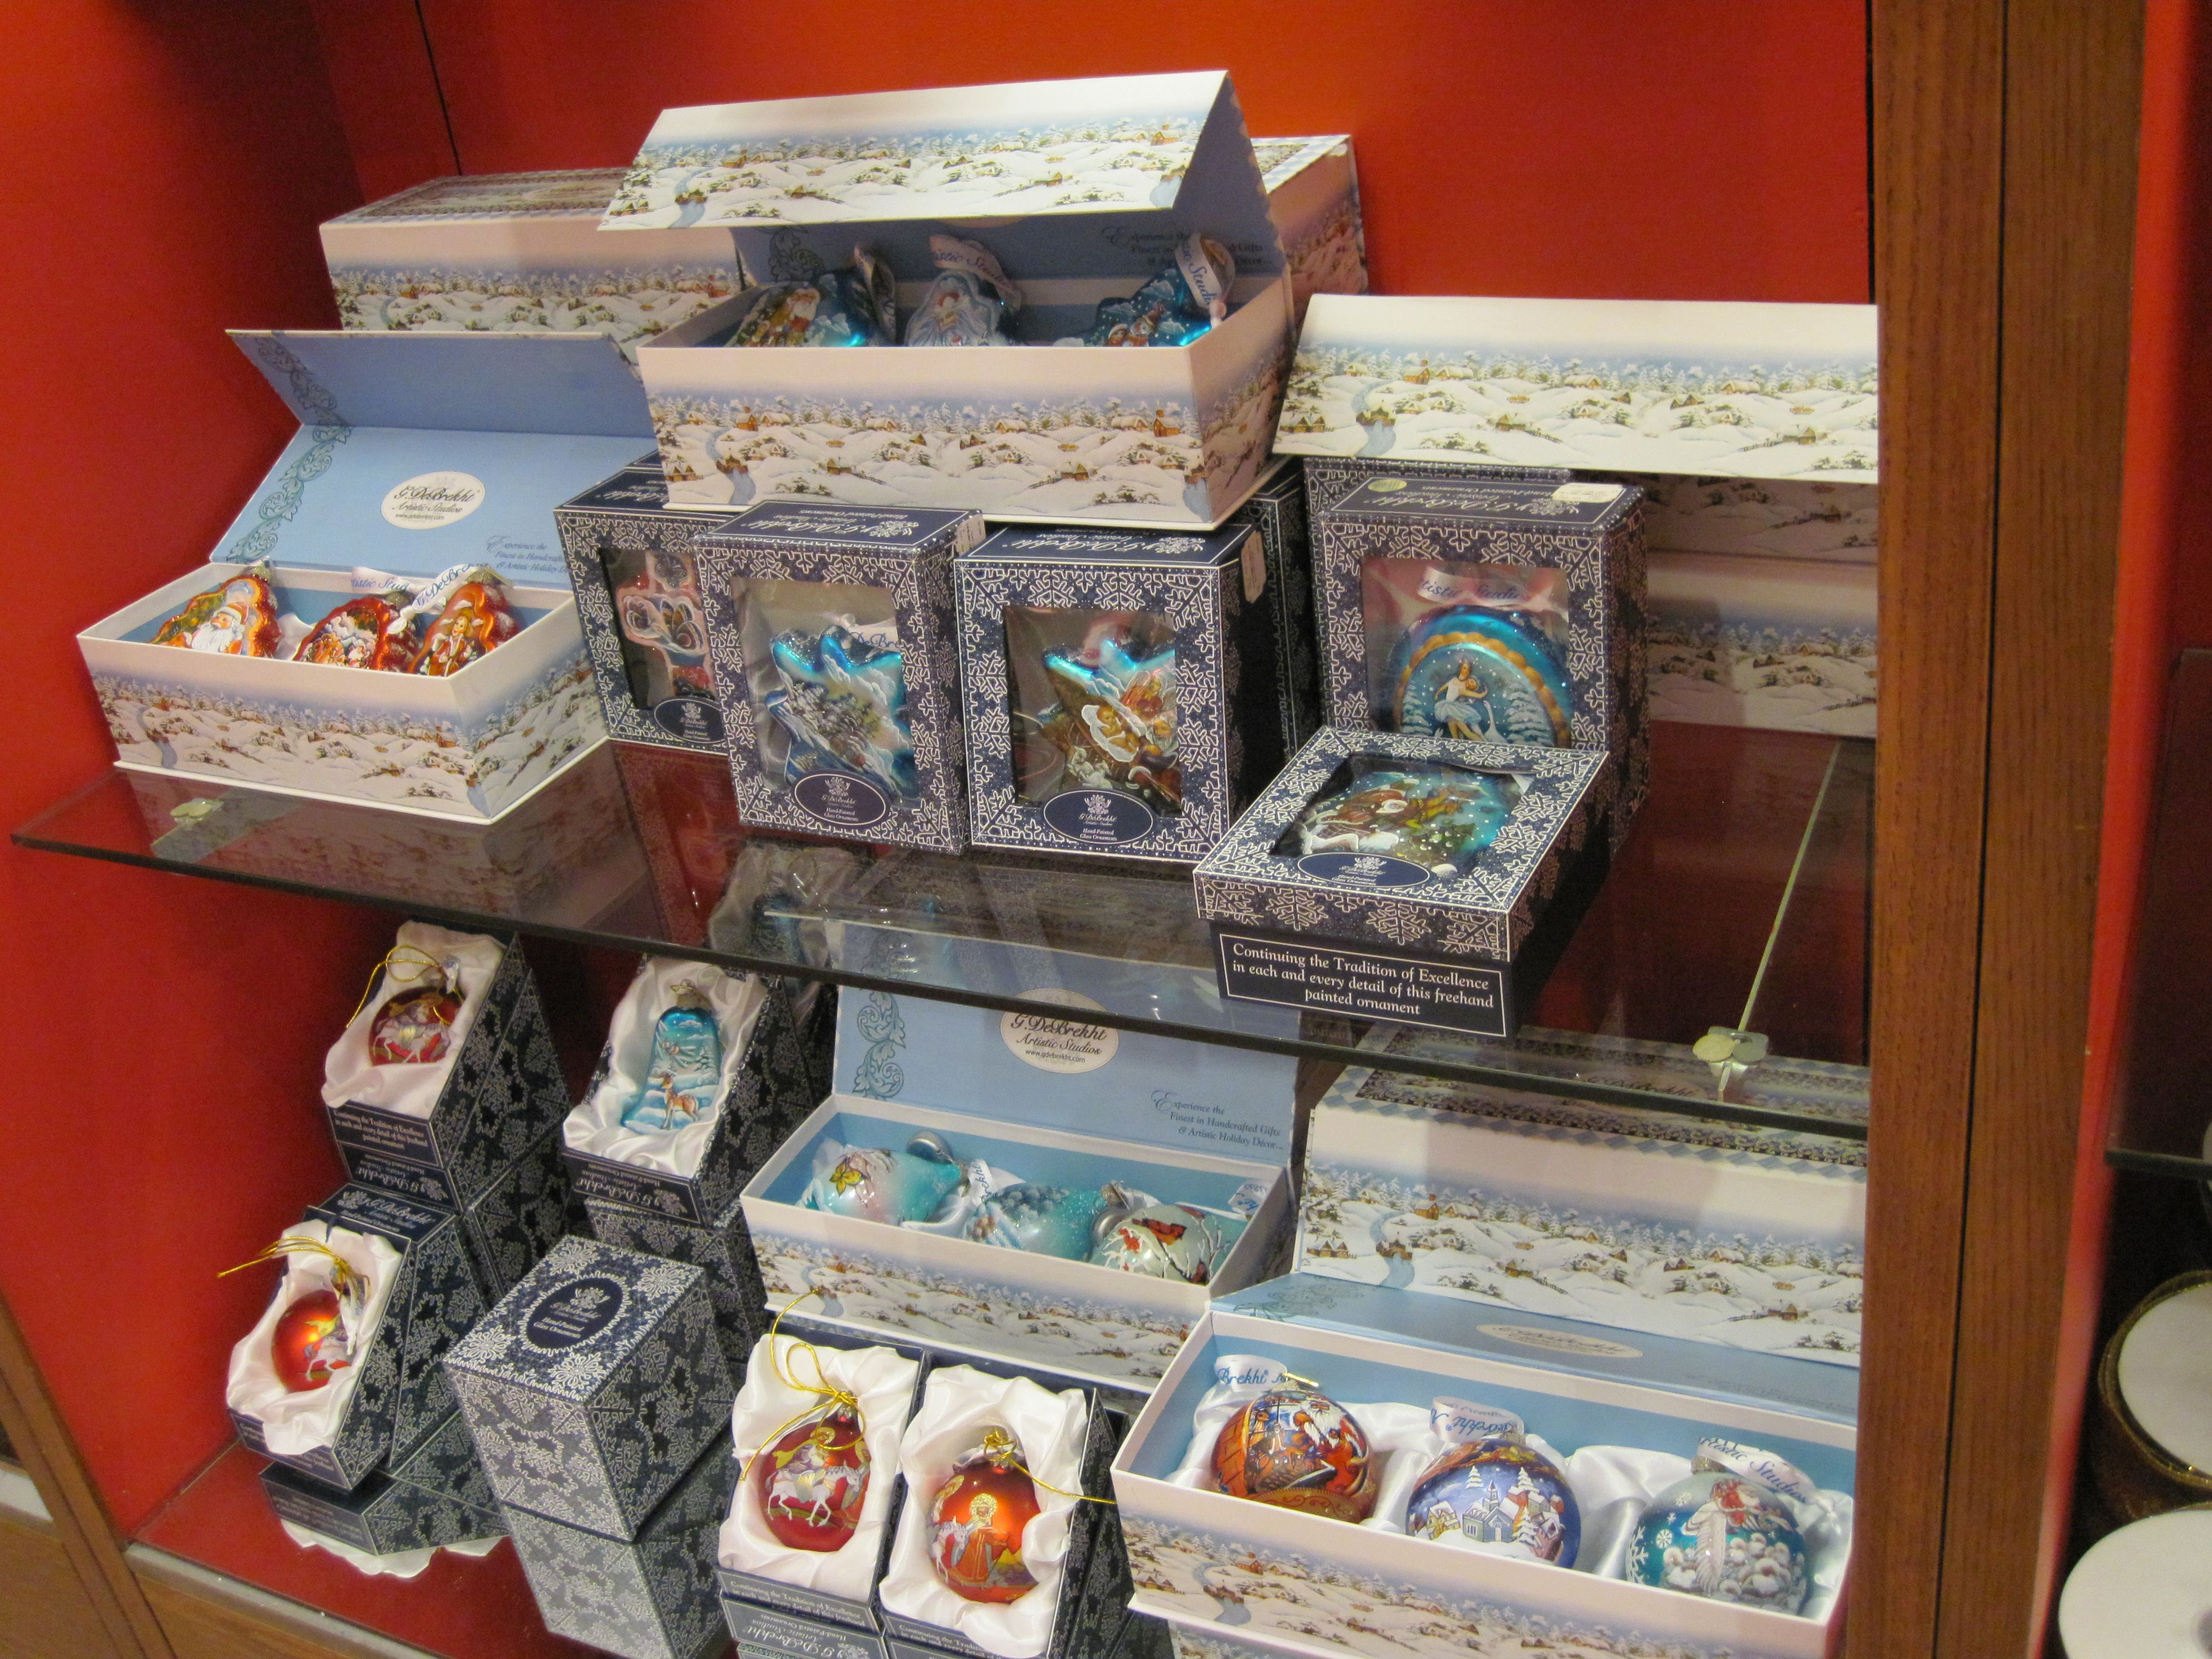 Hand Painted Handmade Glass Christmas Ornaments Make Great Gifts Store  Shelves Are Stocked With G